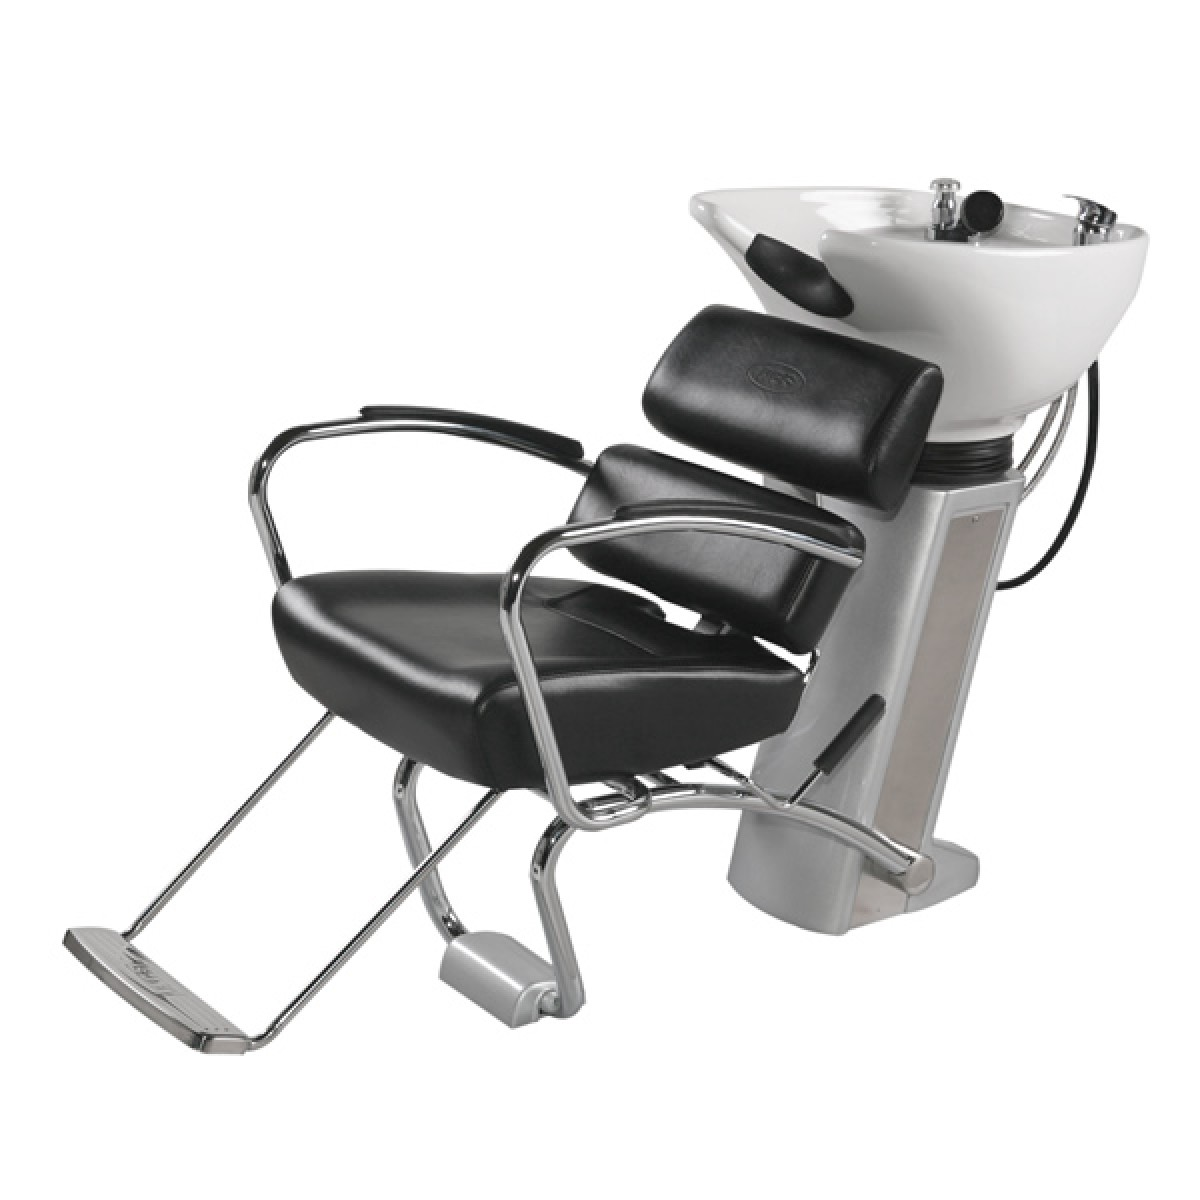 Salon Shampoo Chairs Quotakita Quot Shampoo Unit With Sliding Seat